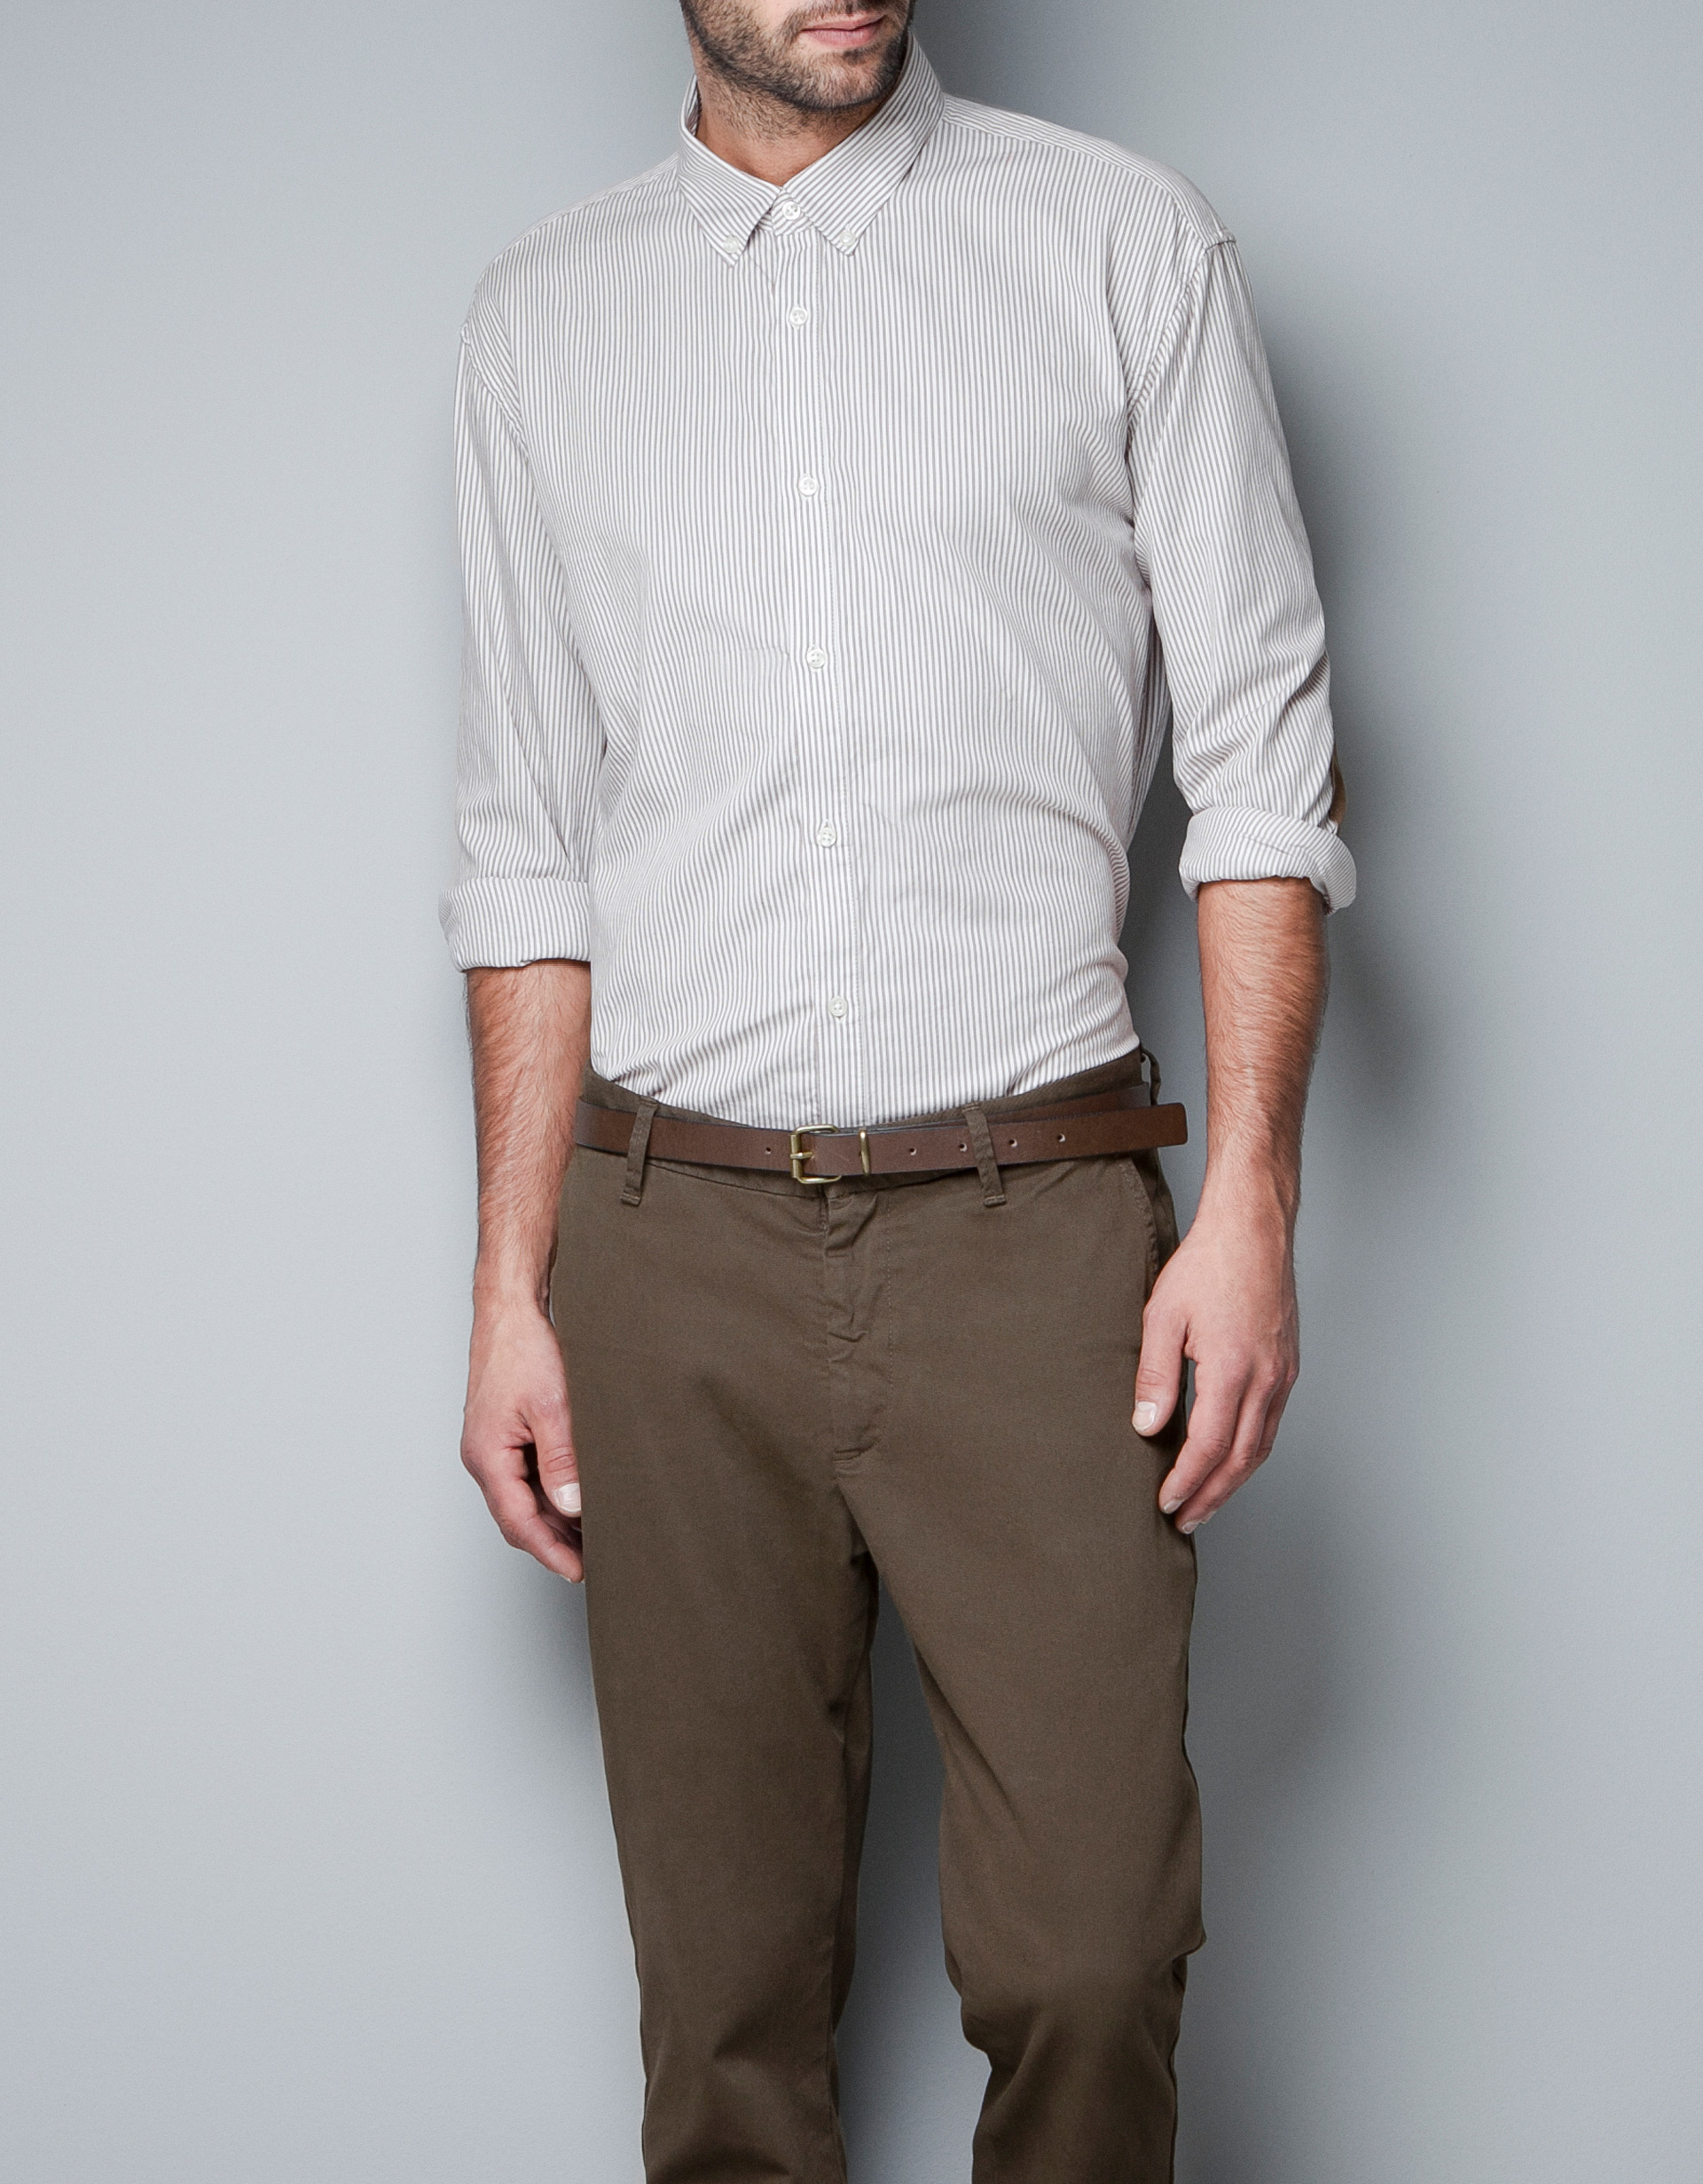 Zara Striped Shirt With Elbow Patches In Brown For Men Lyst